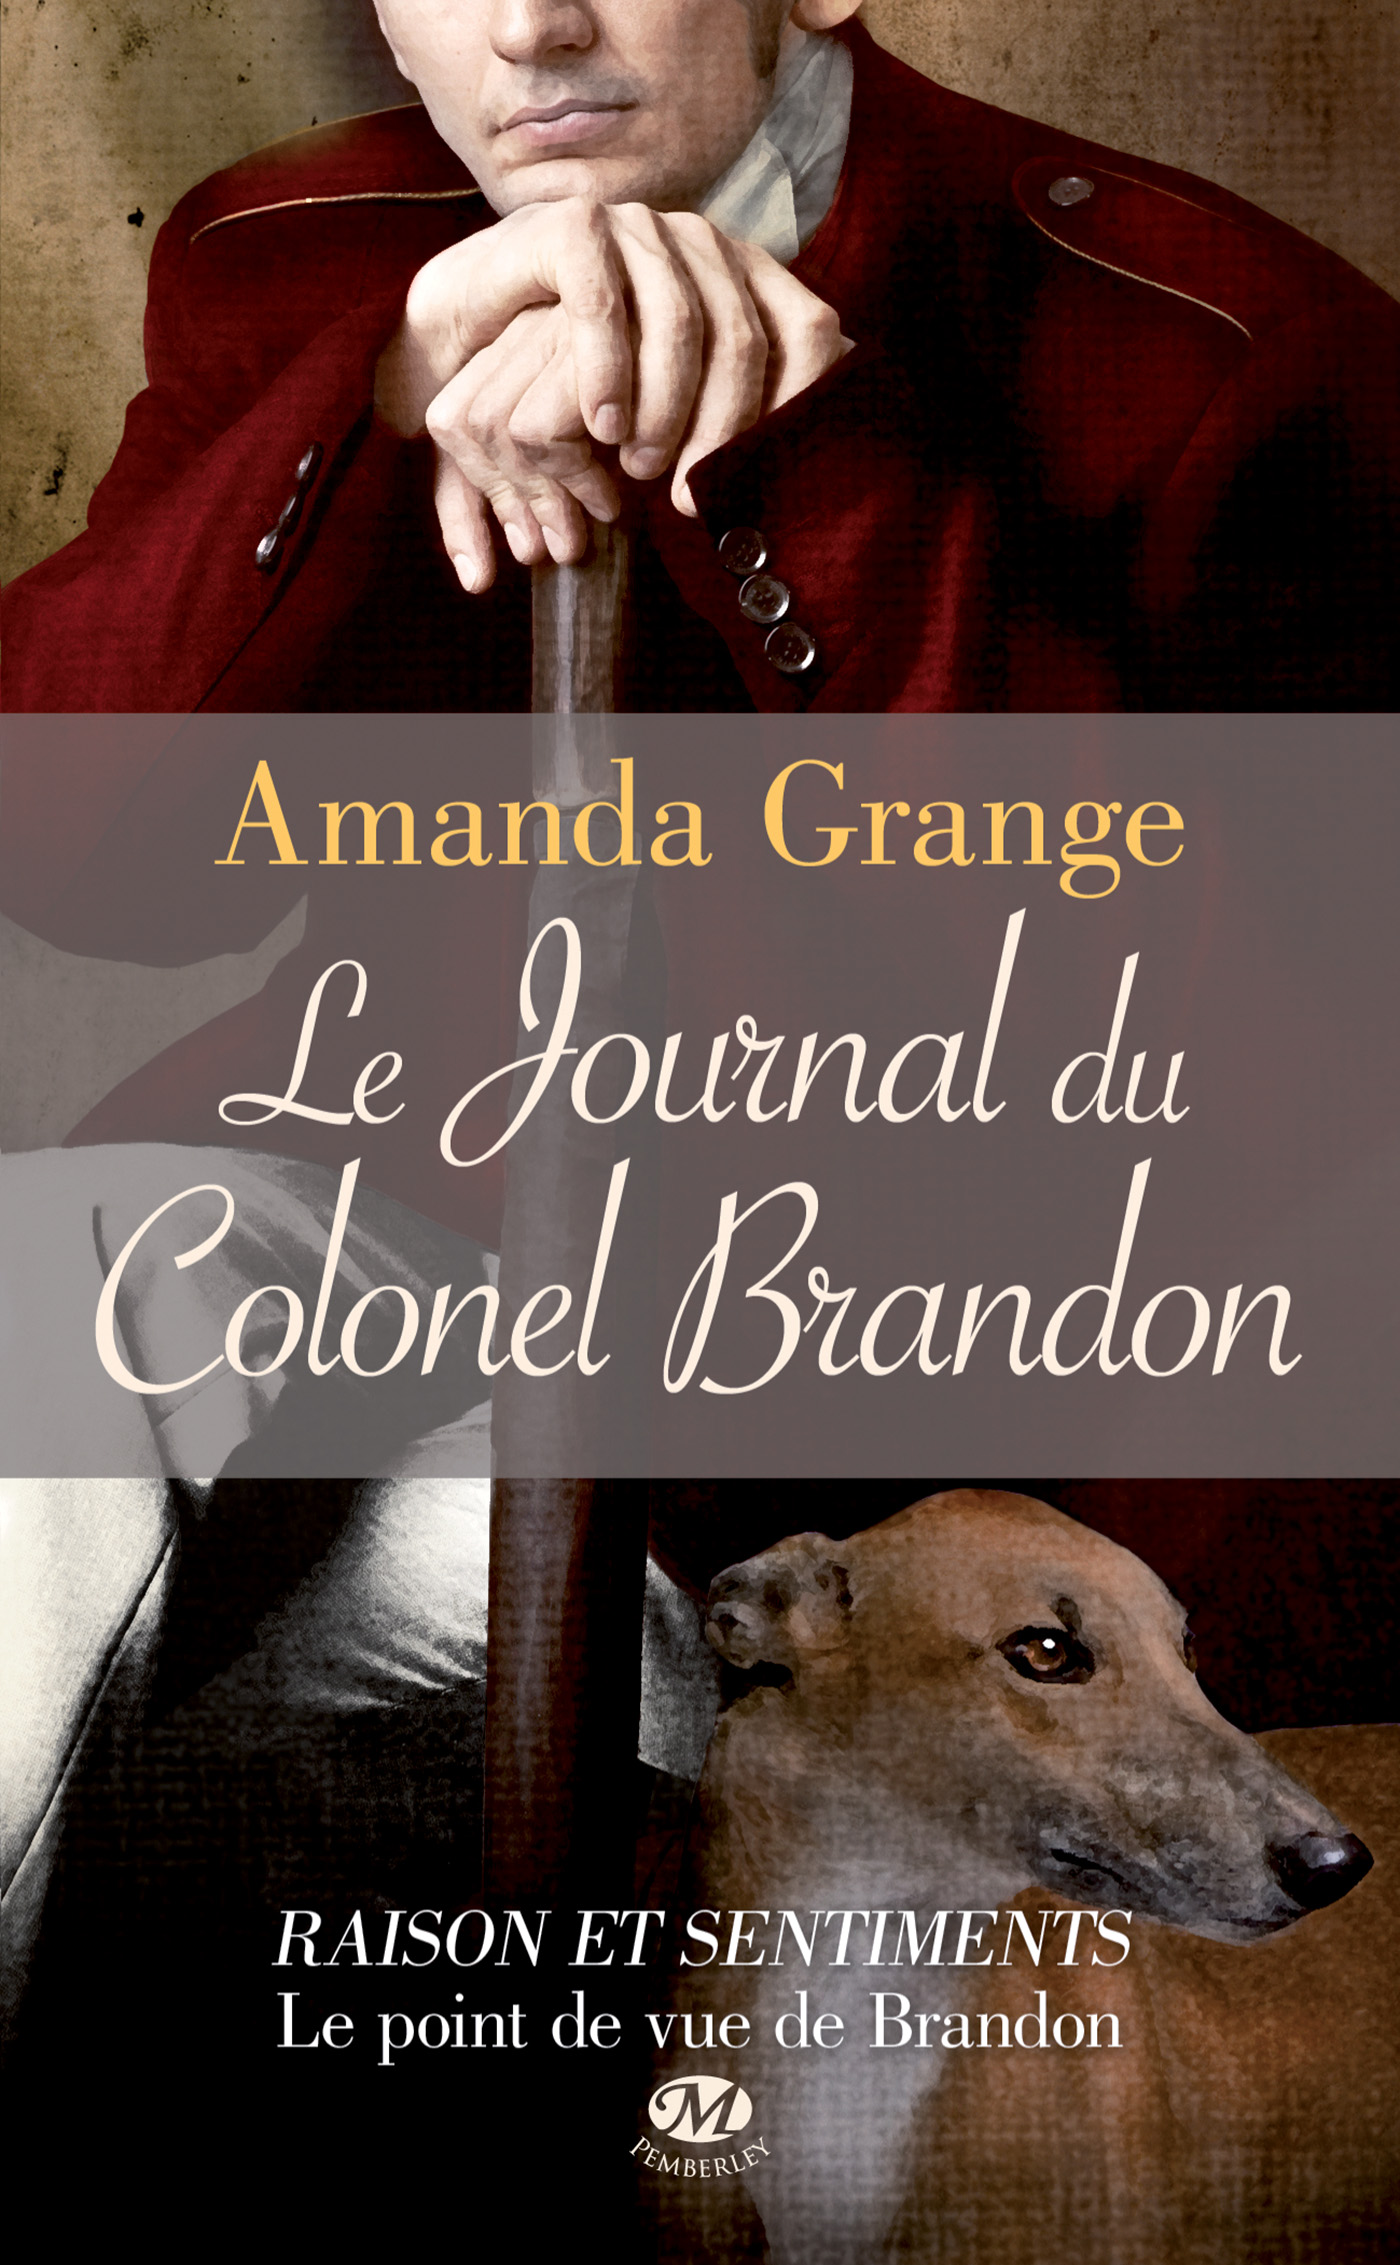 Le Journal du colonel Brandon